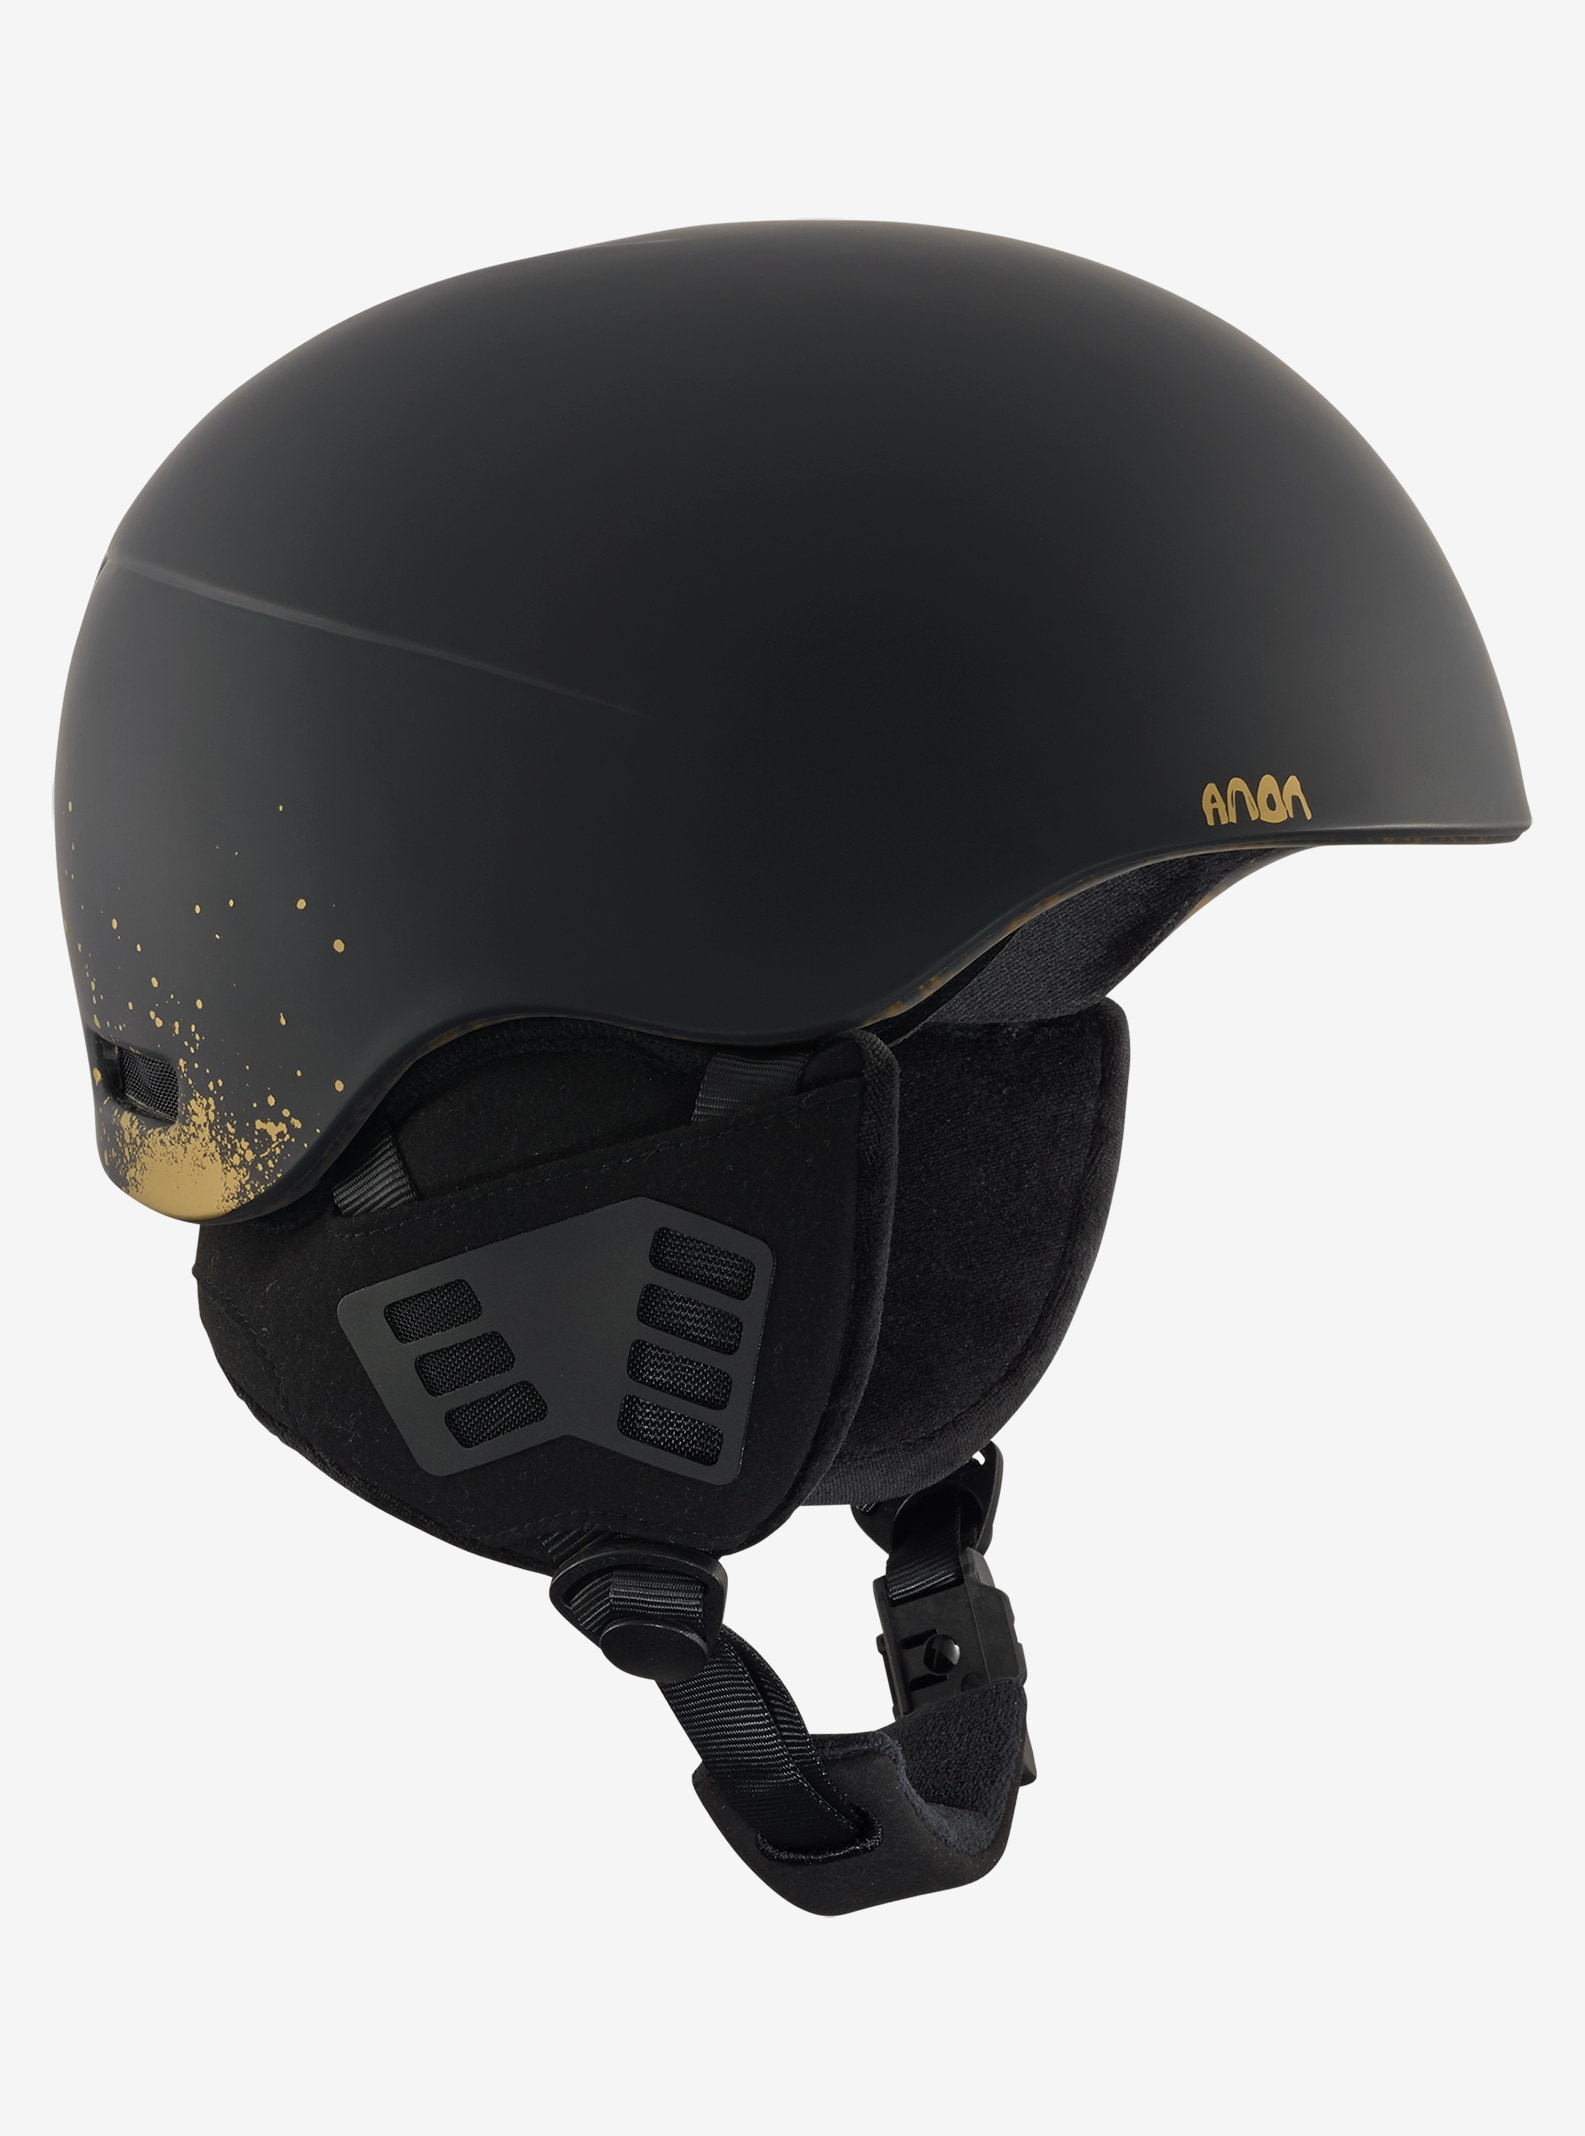 Men's Anon Helo 2.0 Helmet shown in Skully Black